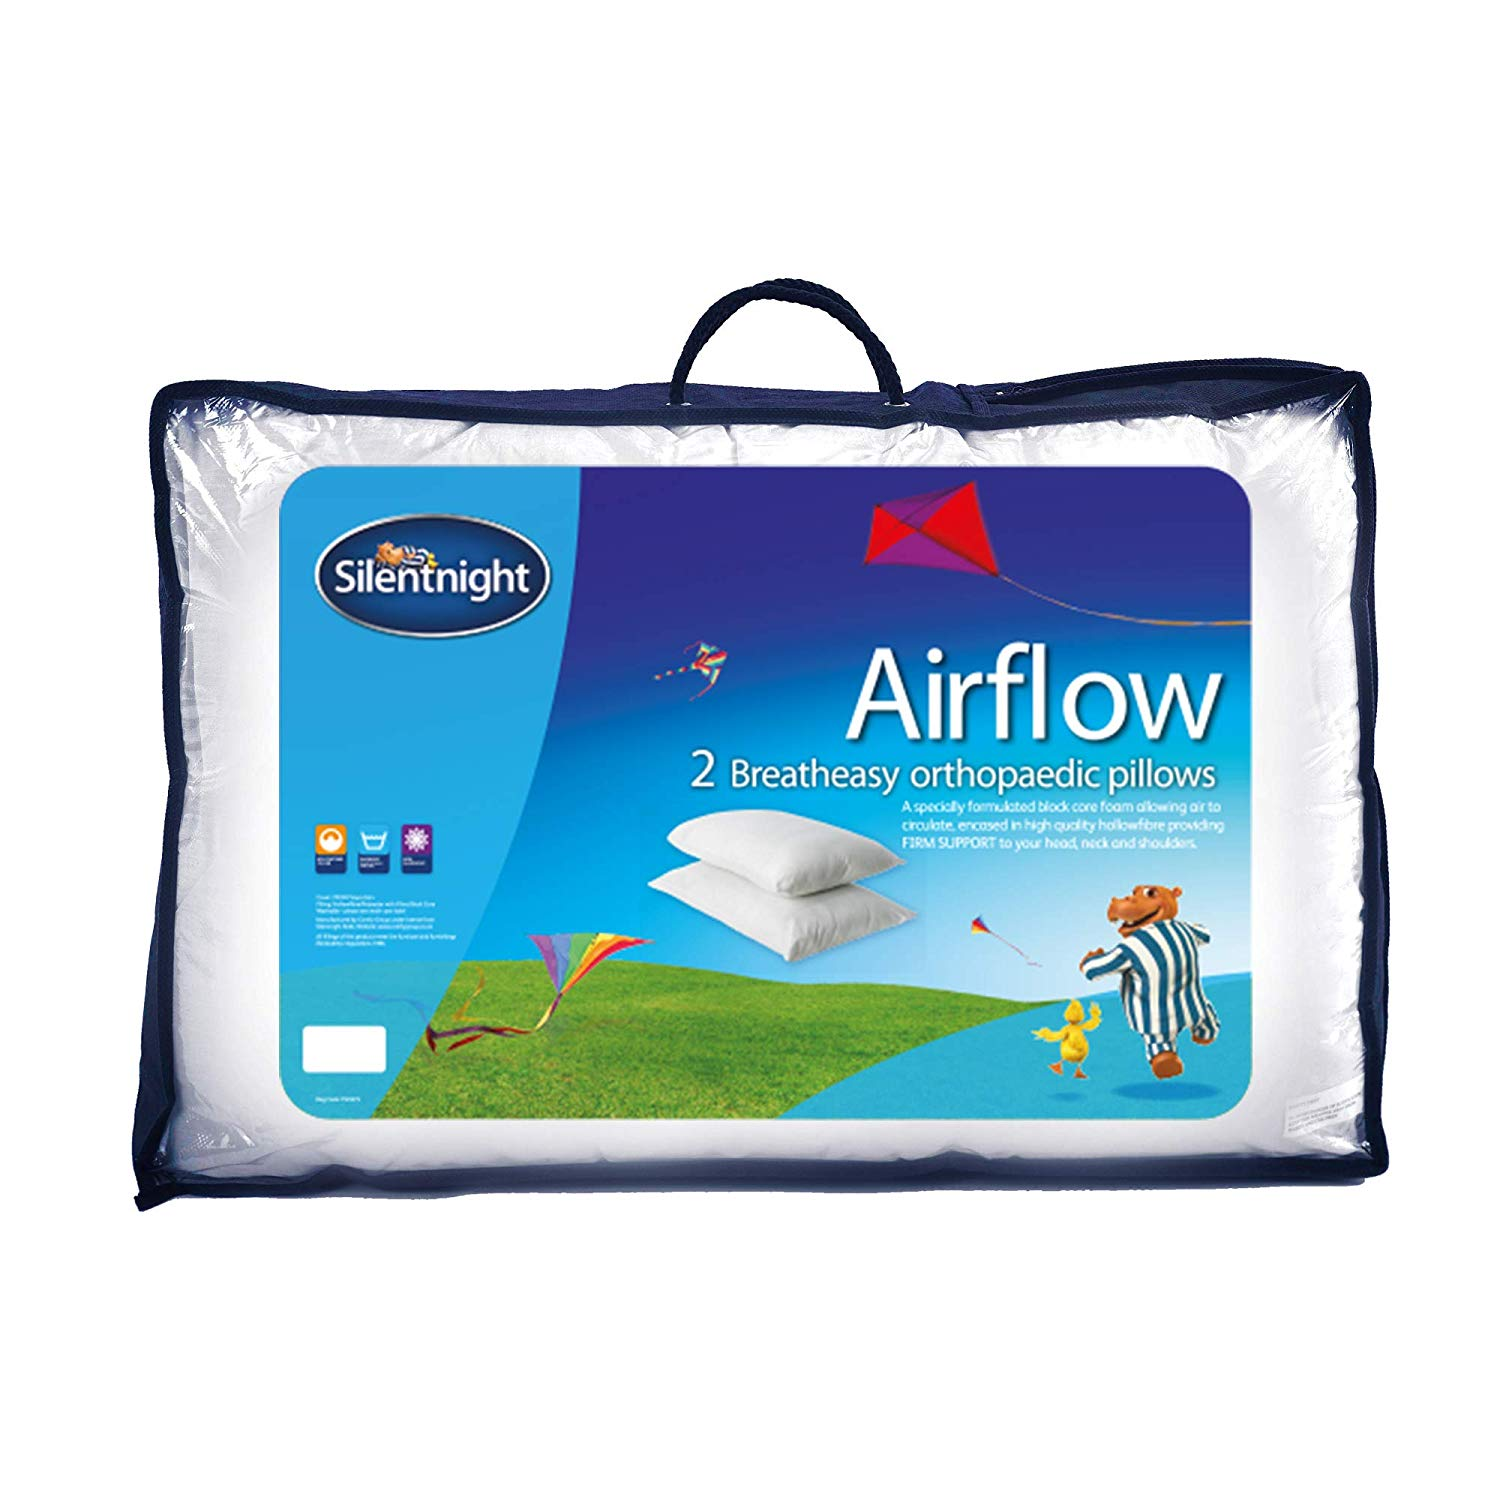 Silentnight Airflow Support Pillow, Pack of 2